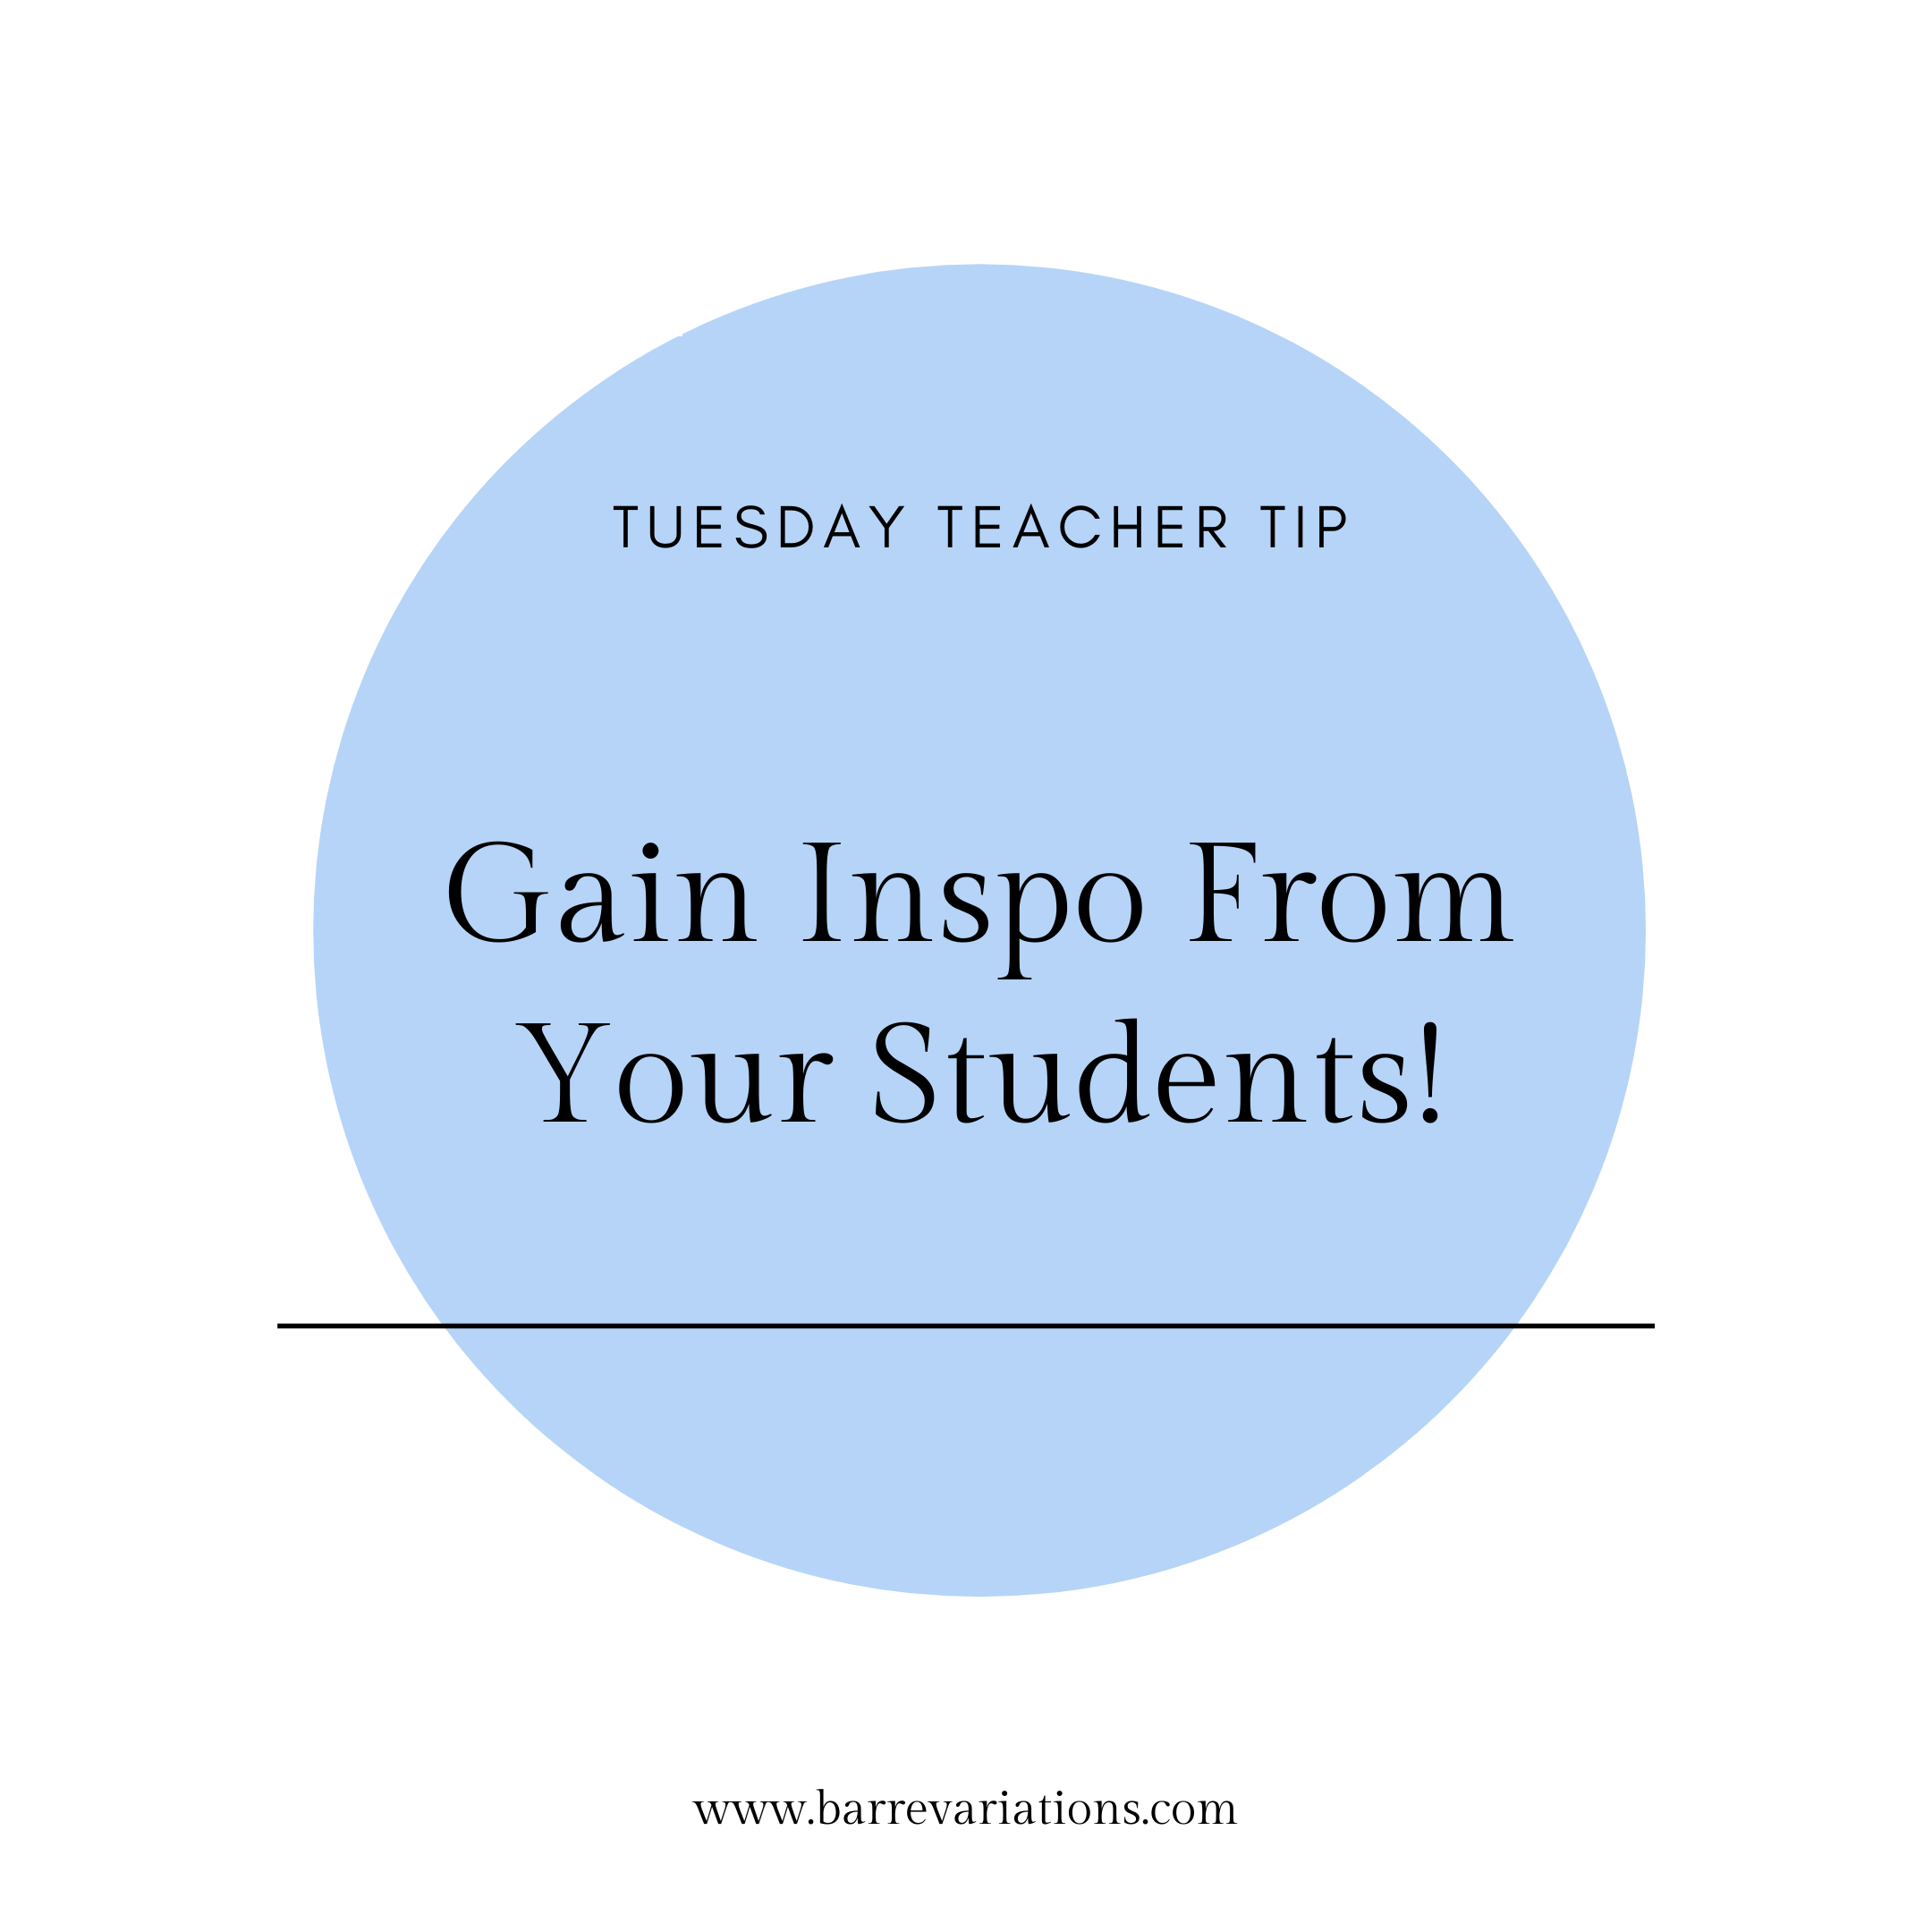 Gain inspo from your students image